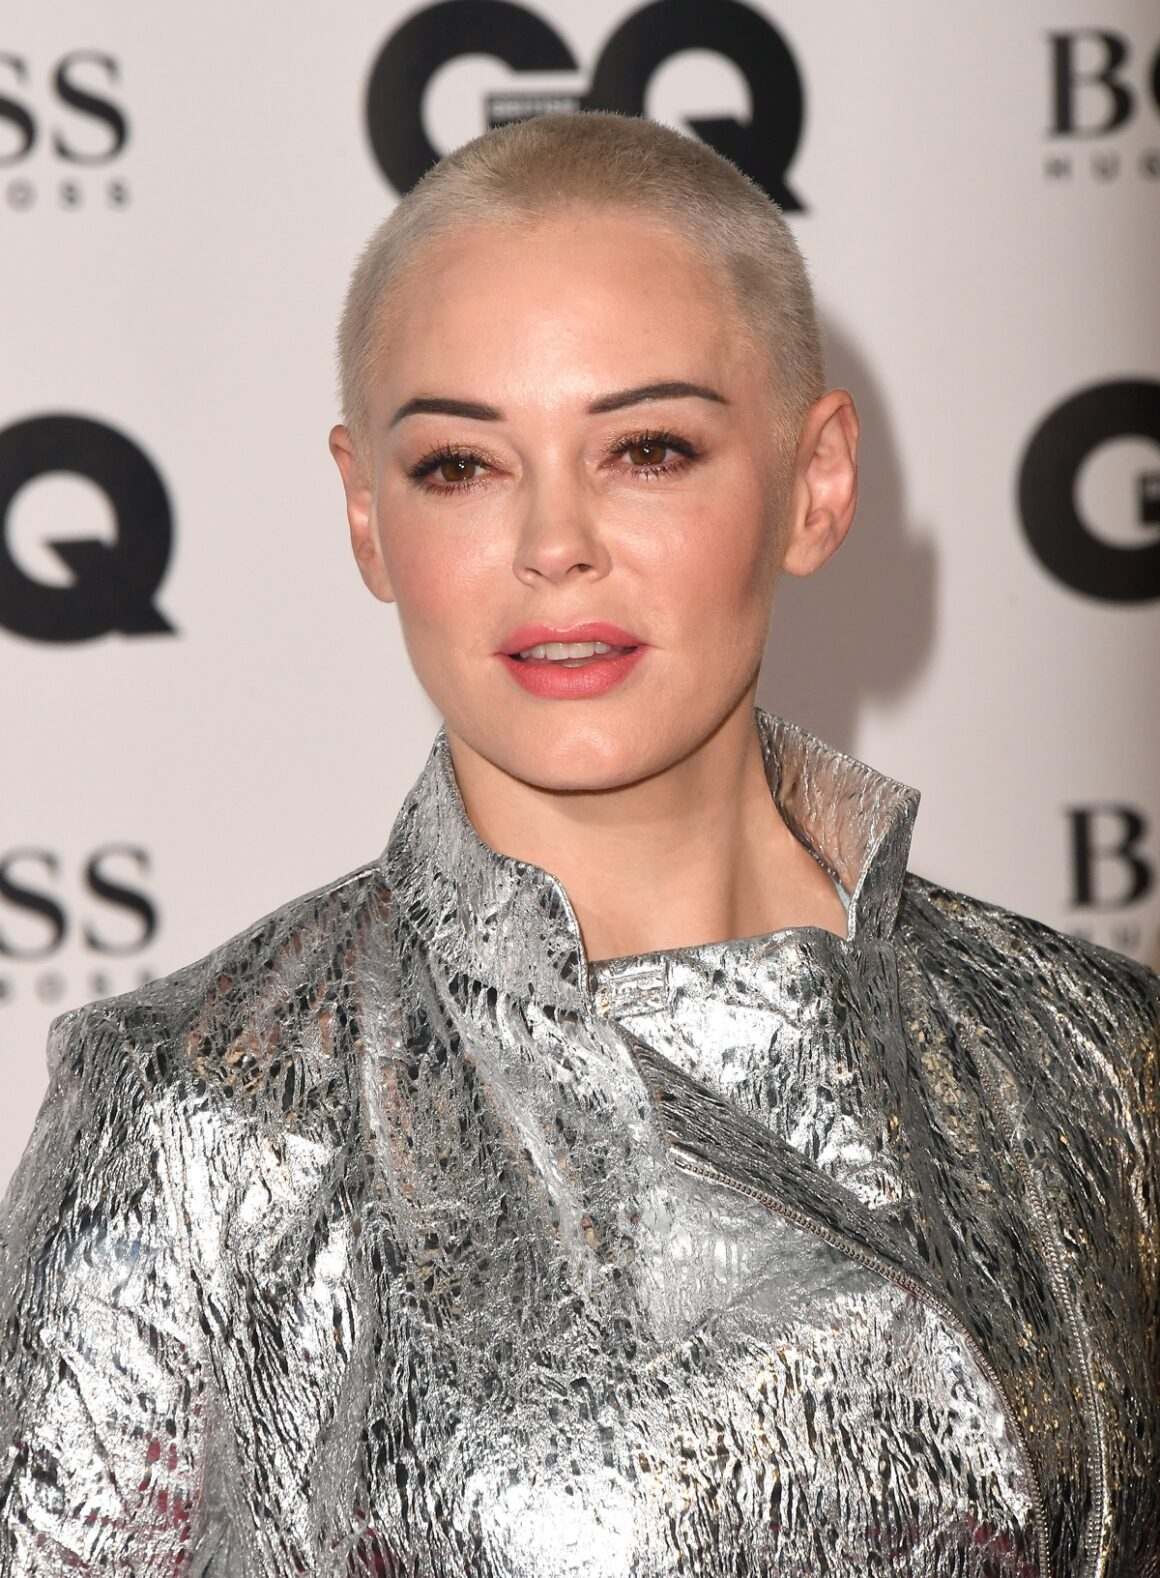 Rose McGowan moves to Mexico, says she's not moving back to the US 1